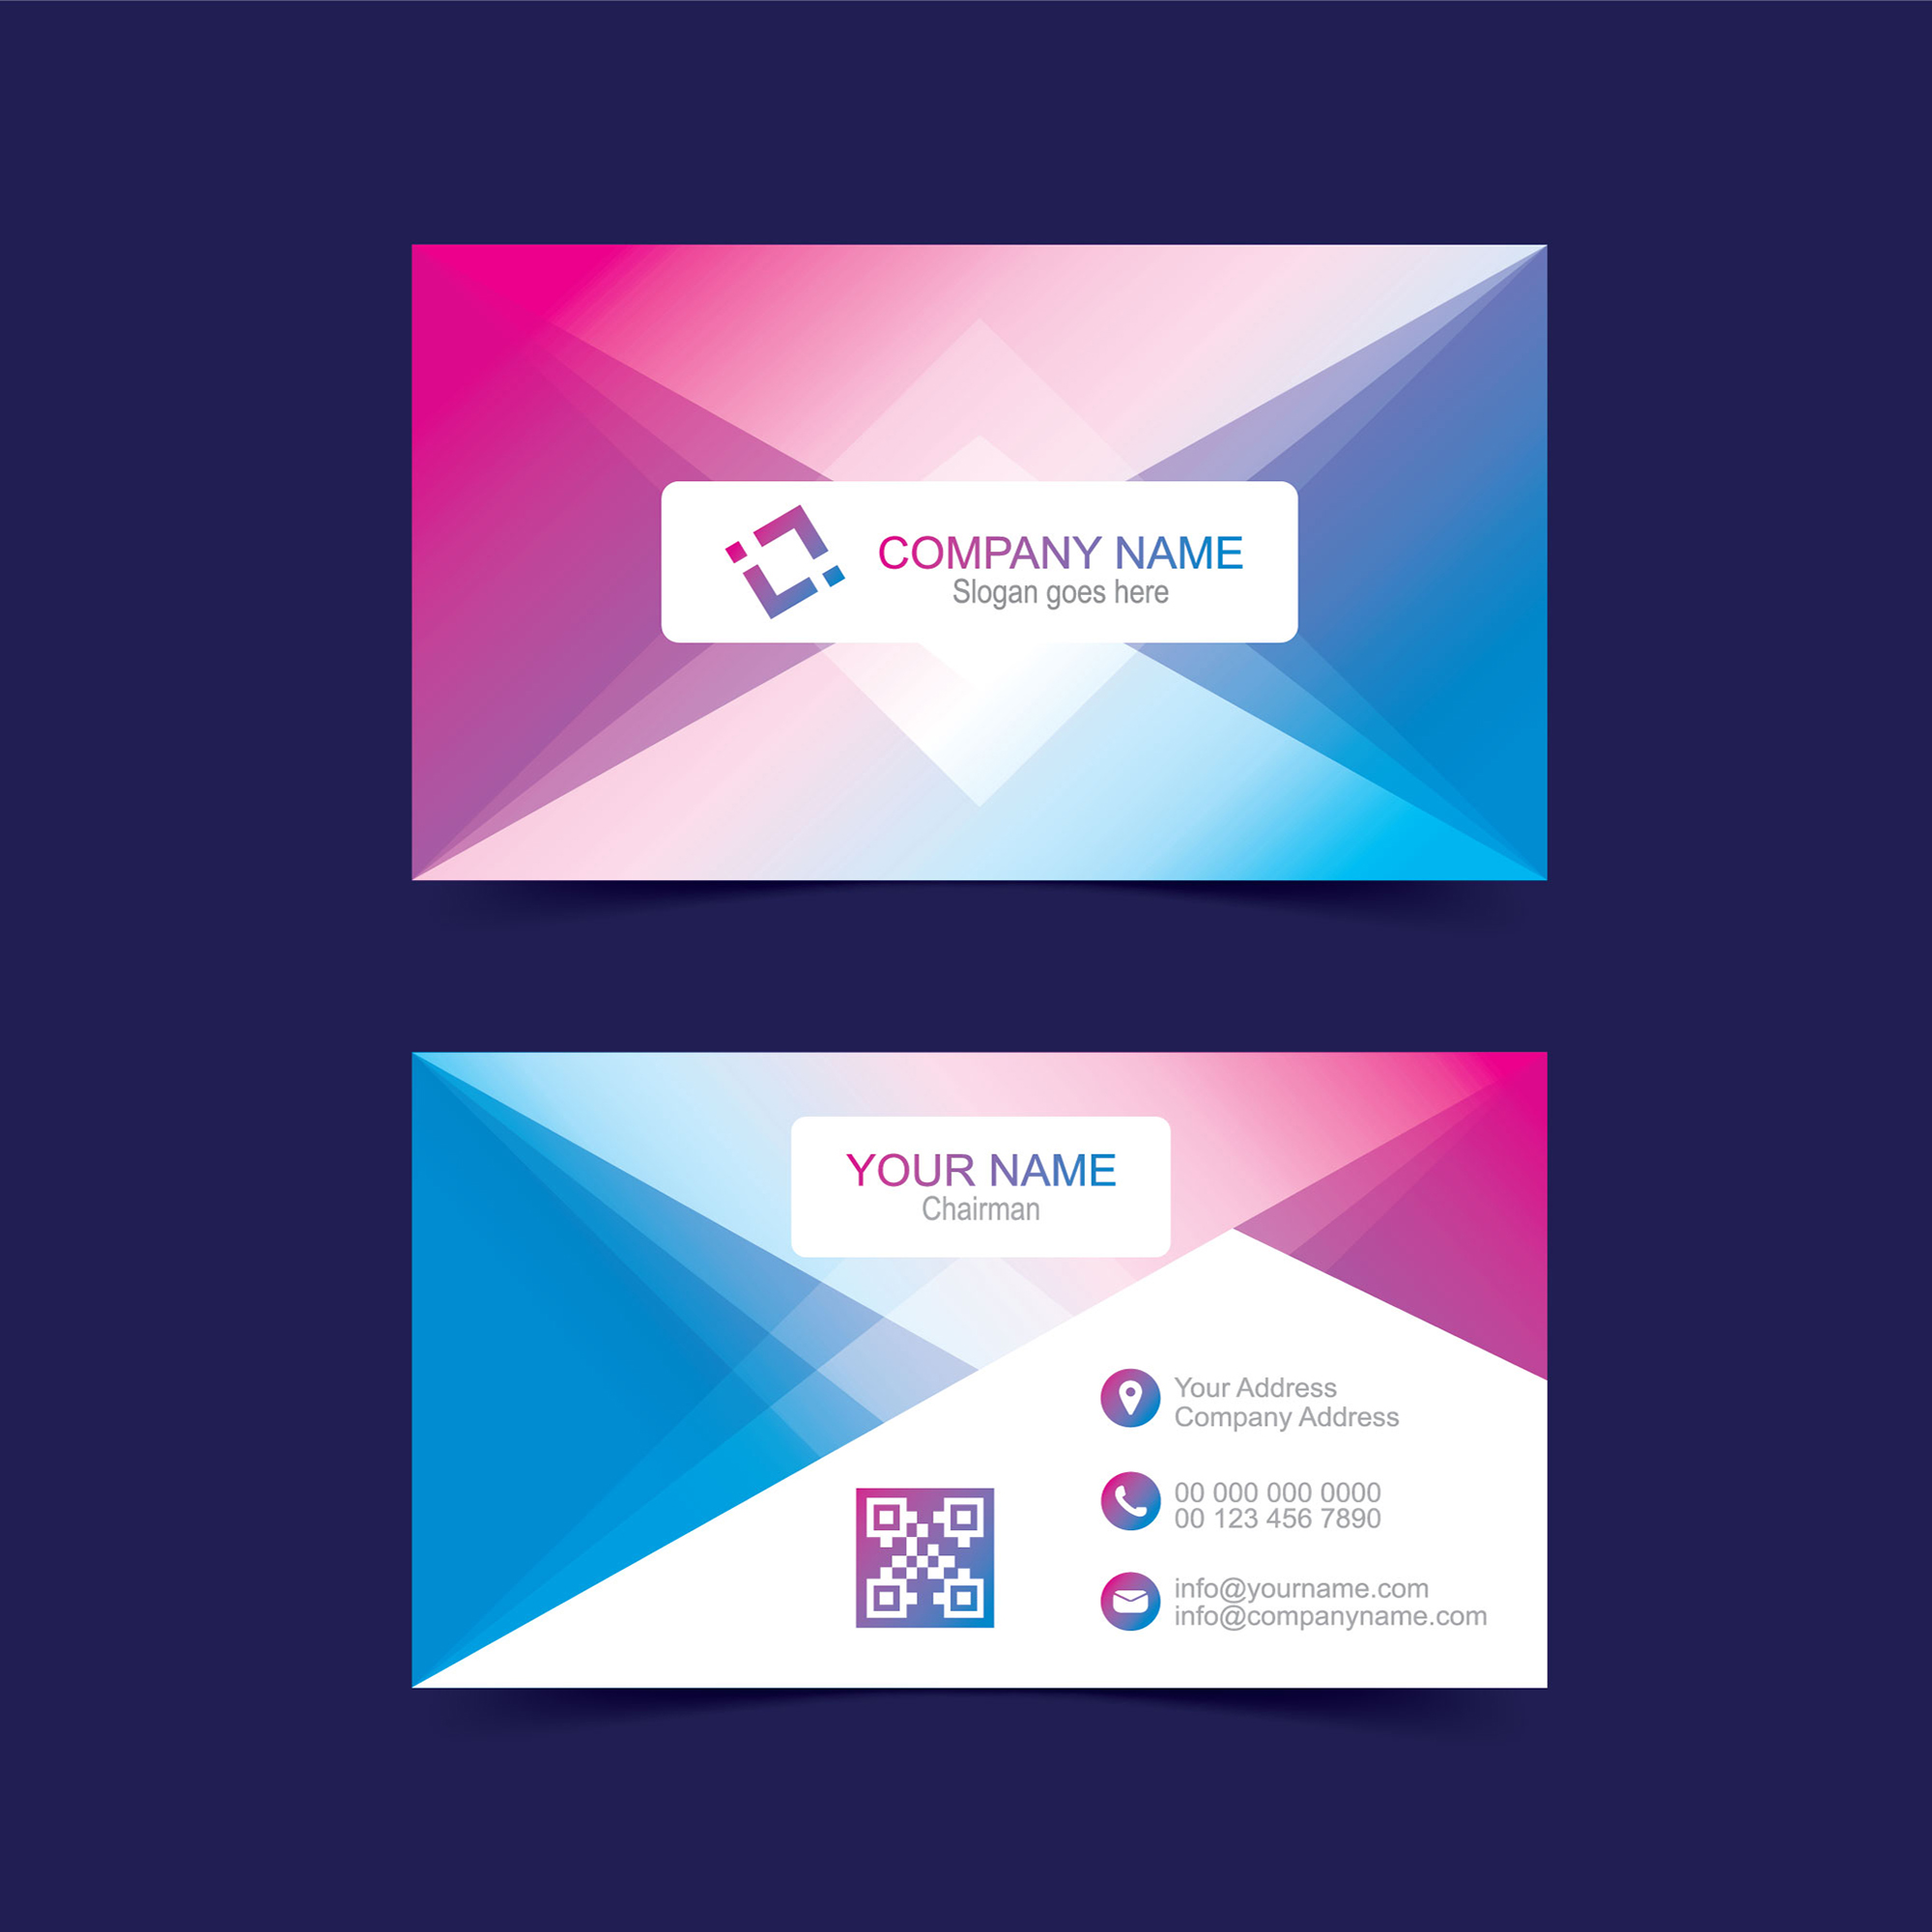 Business card template free download free vector wisxi business card business cards business card design business card template design templates cheaphphosting Image collections